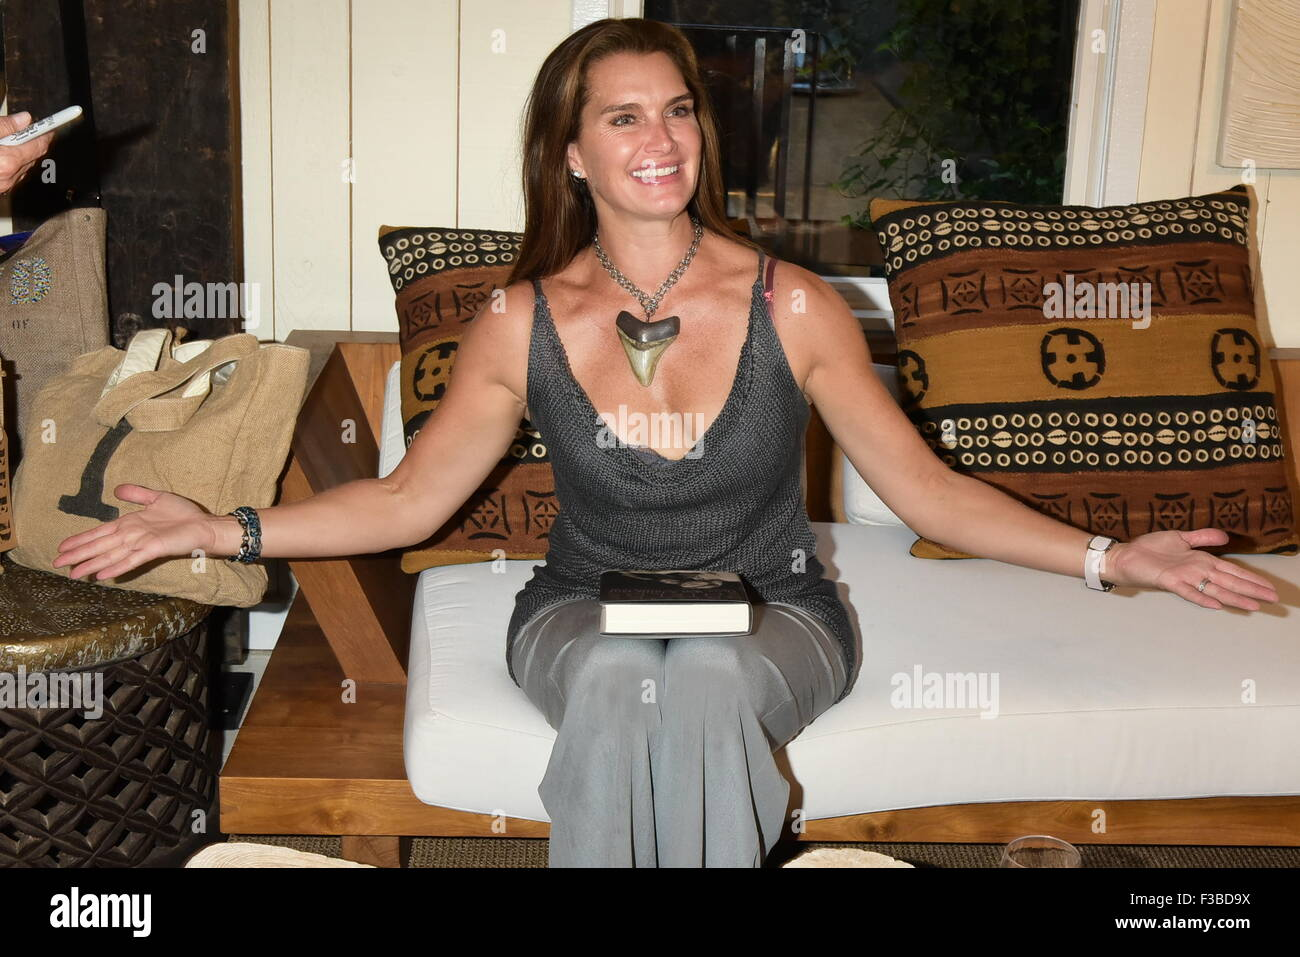 Brooke Shields Promotes And Signs Copies Of Her New Book U0027There Was A  Little Girlu0027 At Urban Zen In Sag Harbor Featuring: Brooke Shields Where:  Sag Harbor, ...